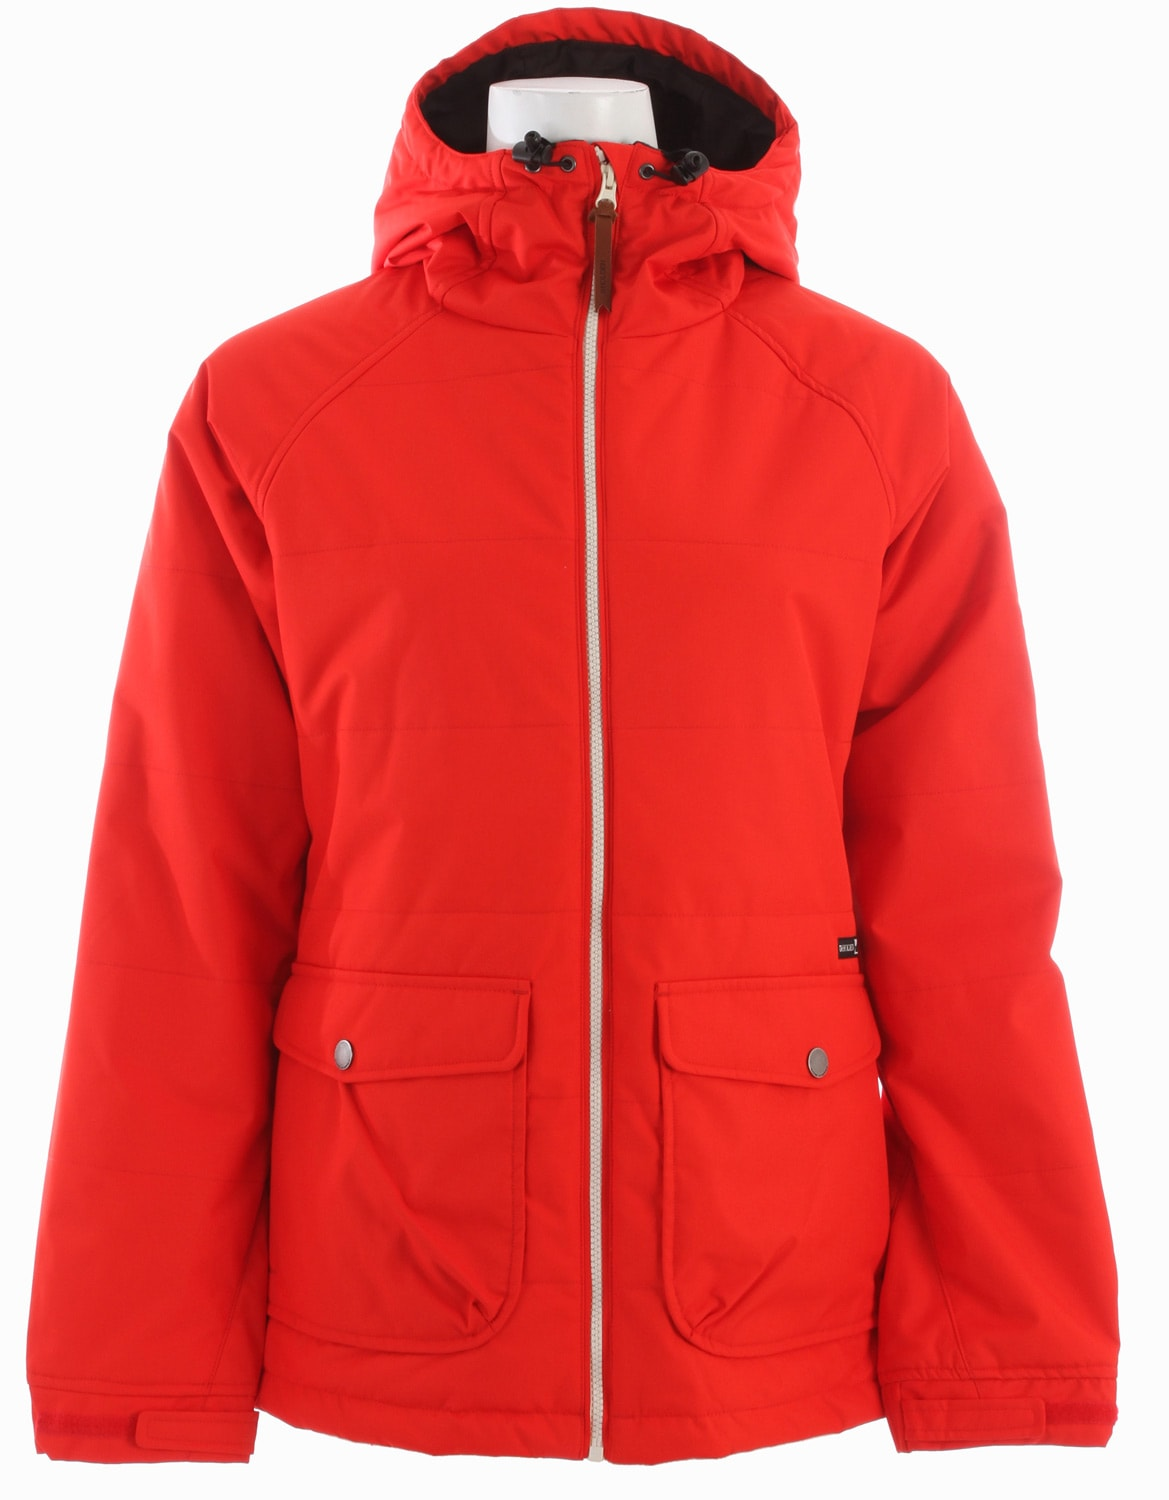 Womens snowboarding jackets on sale